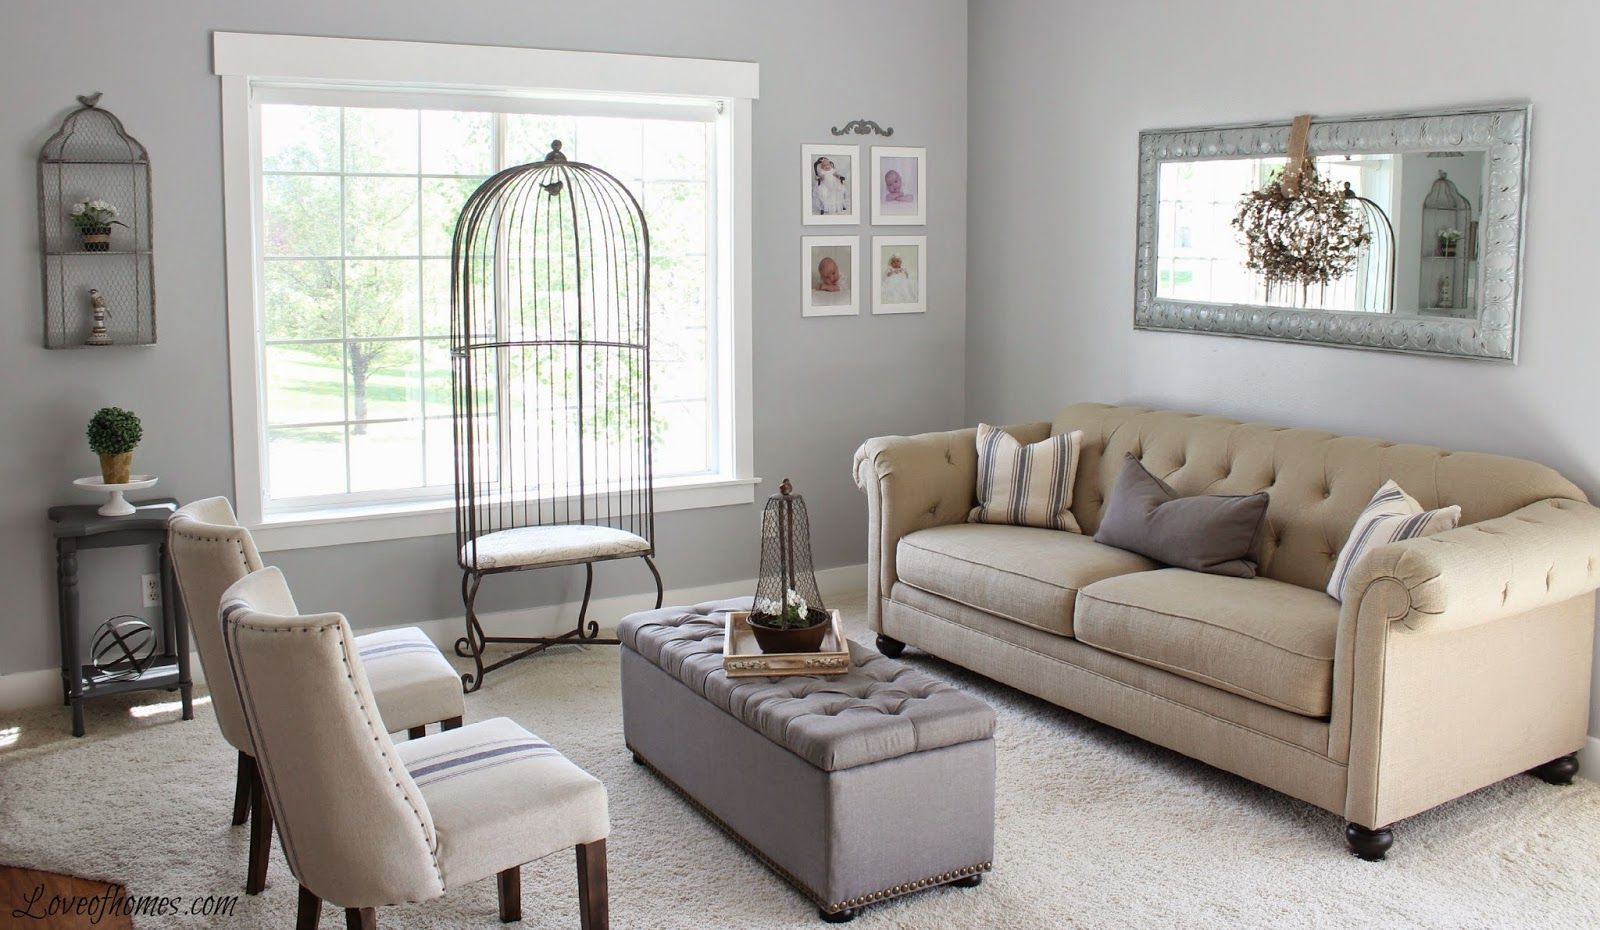 Best Love Of Homes Living Room Reveal Benjamin Moore Wall 640 x 480